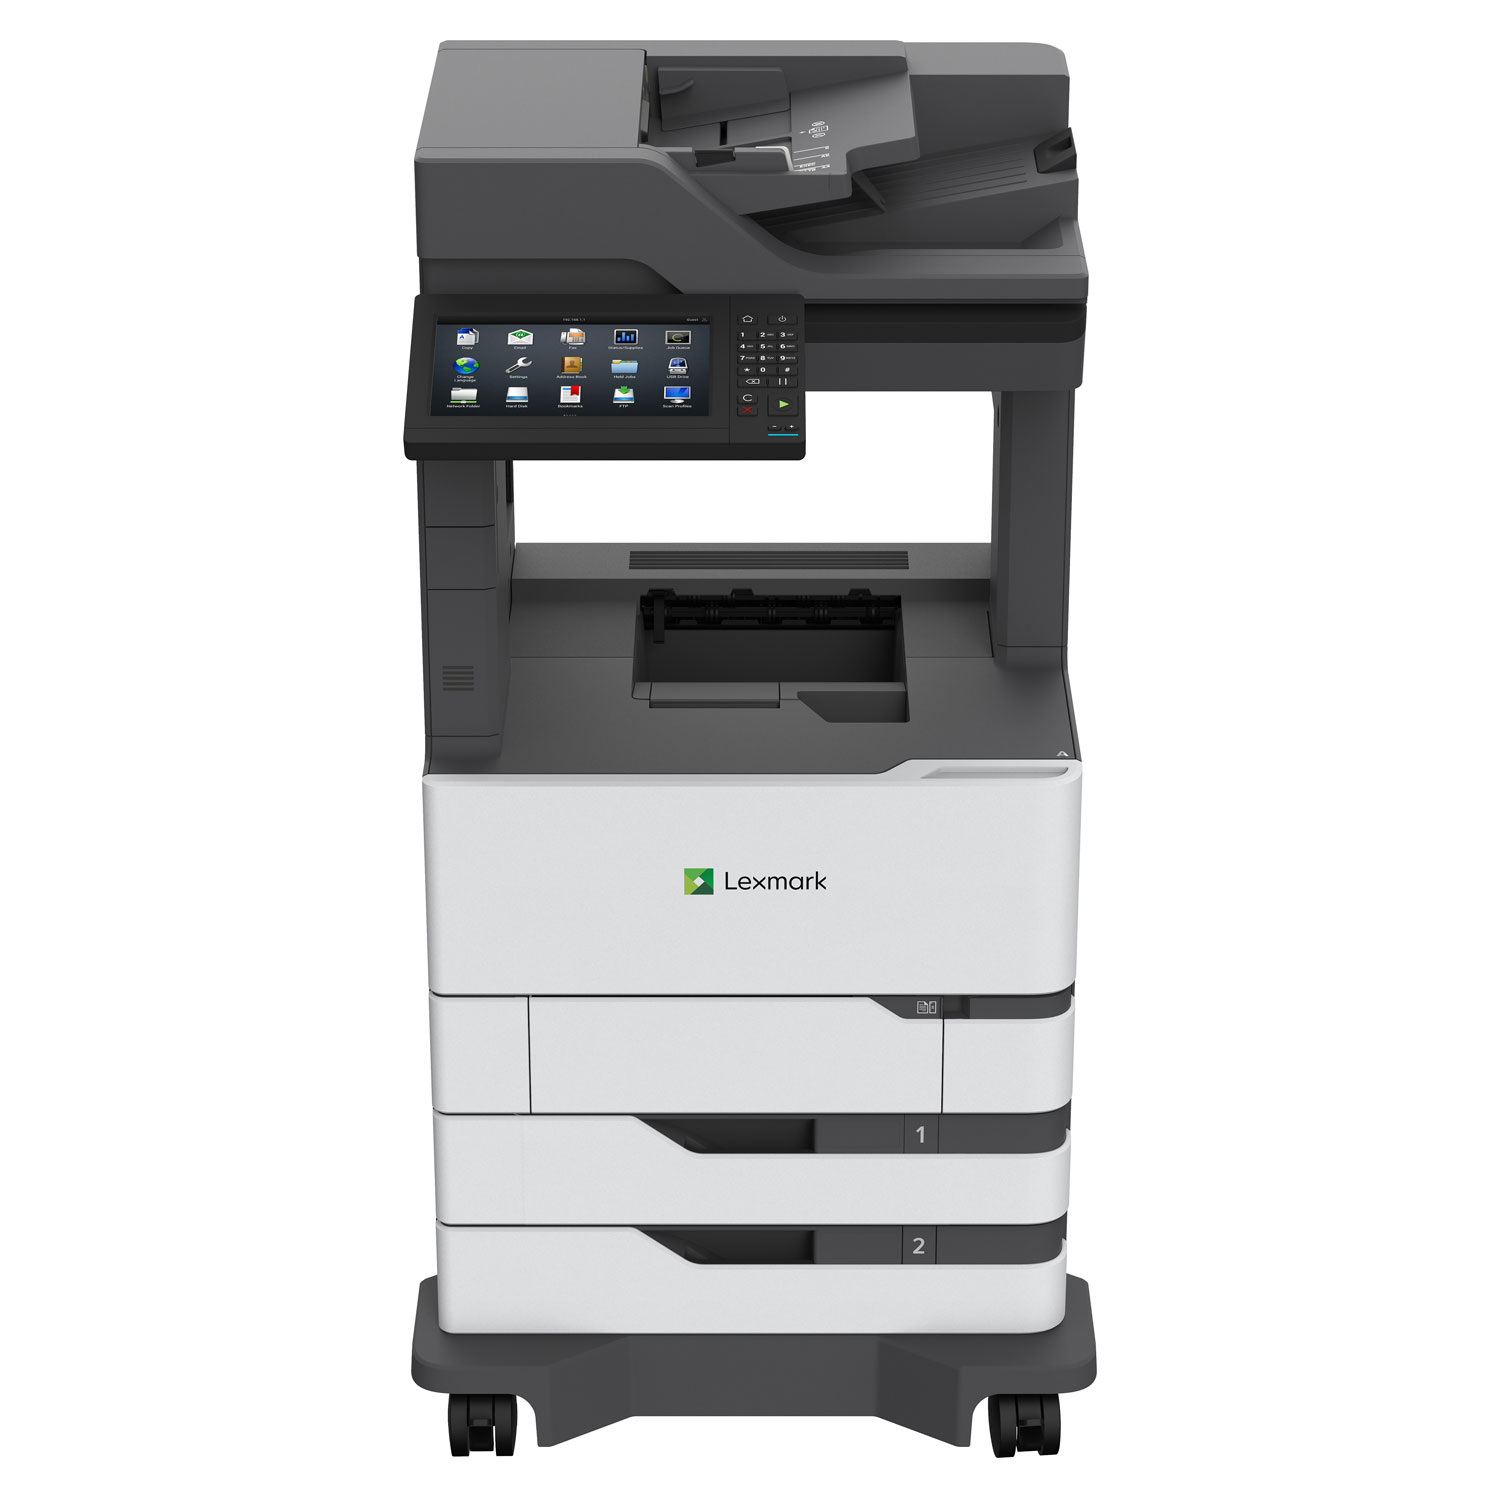 MX826ade Multifunction Printer, Copy/Fax/Print/Scan